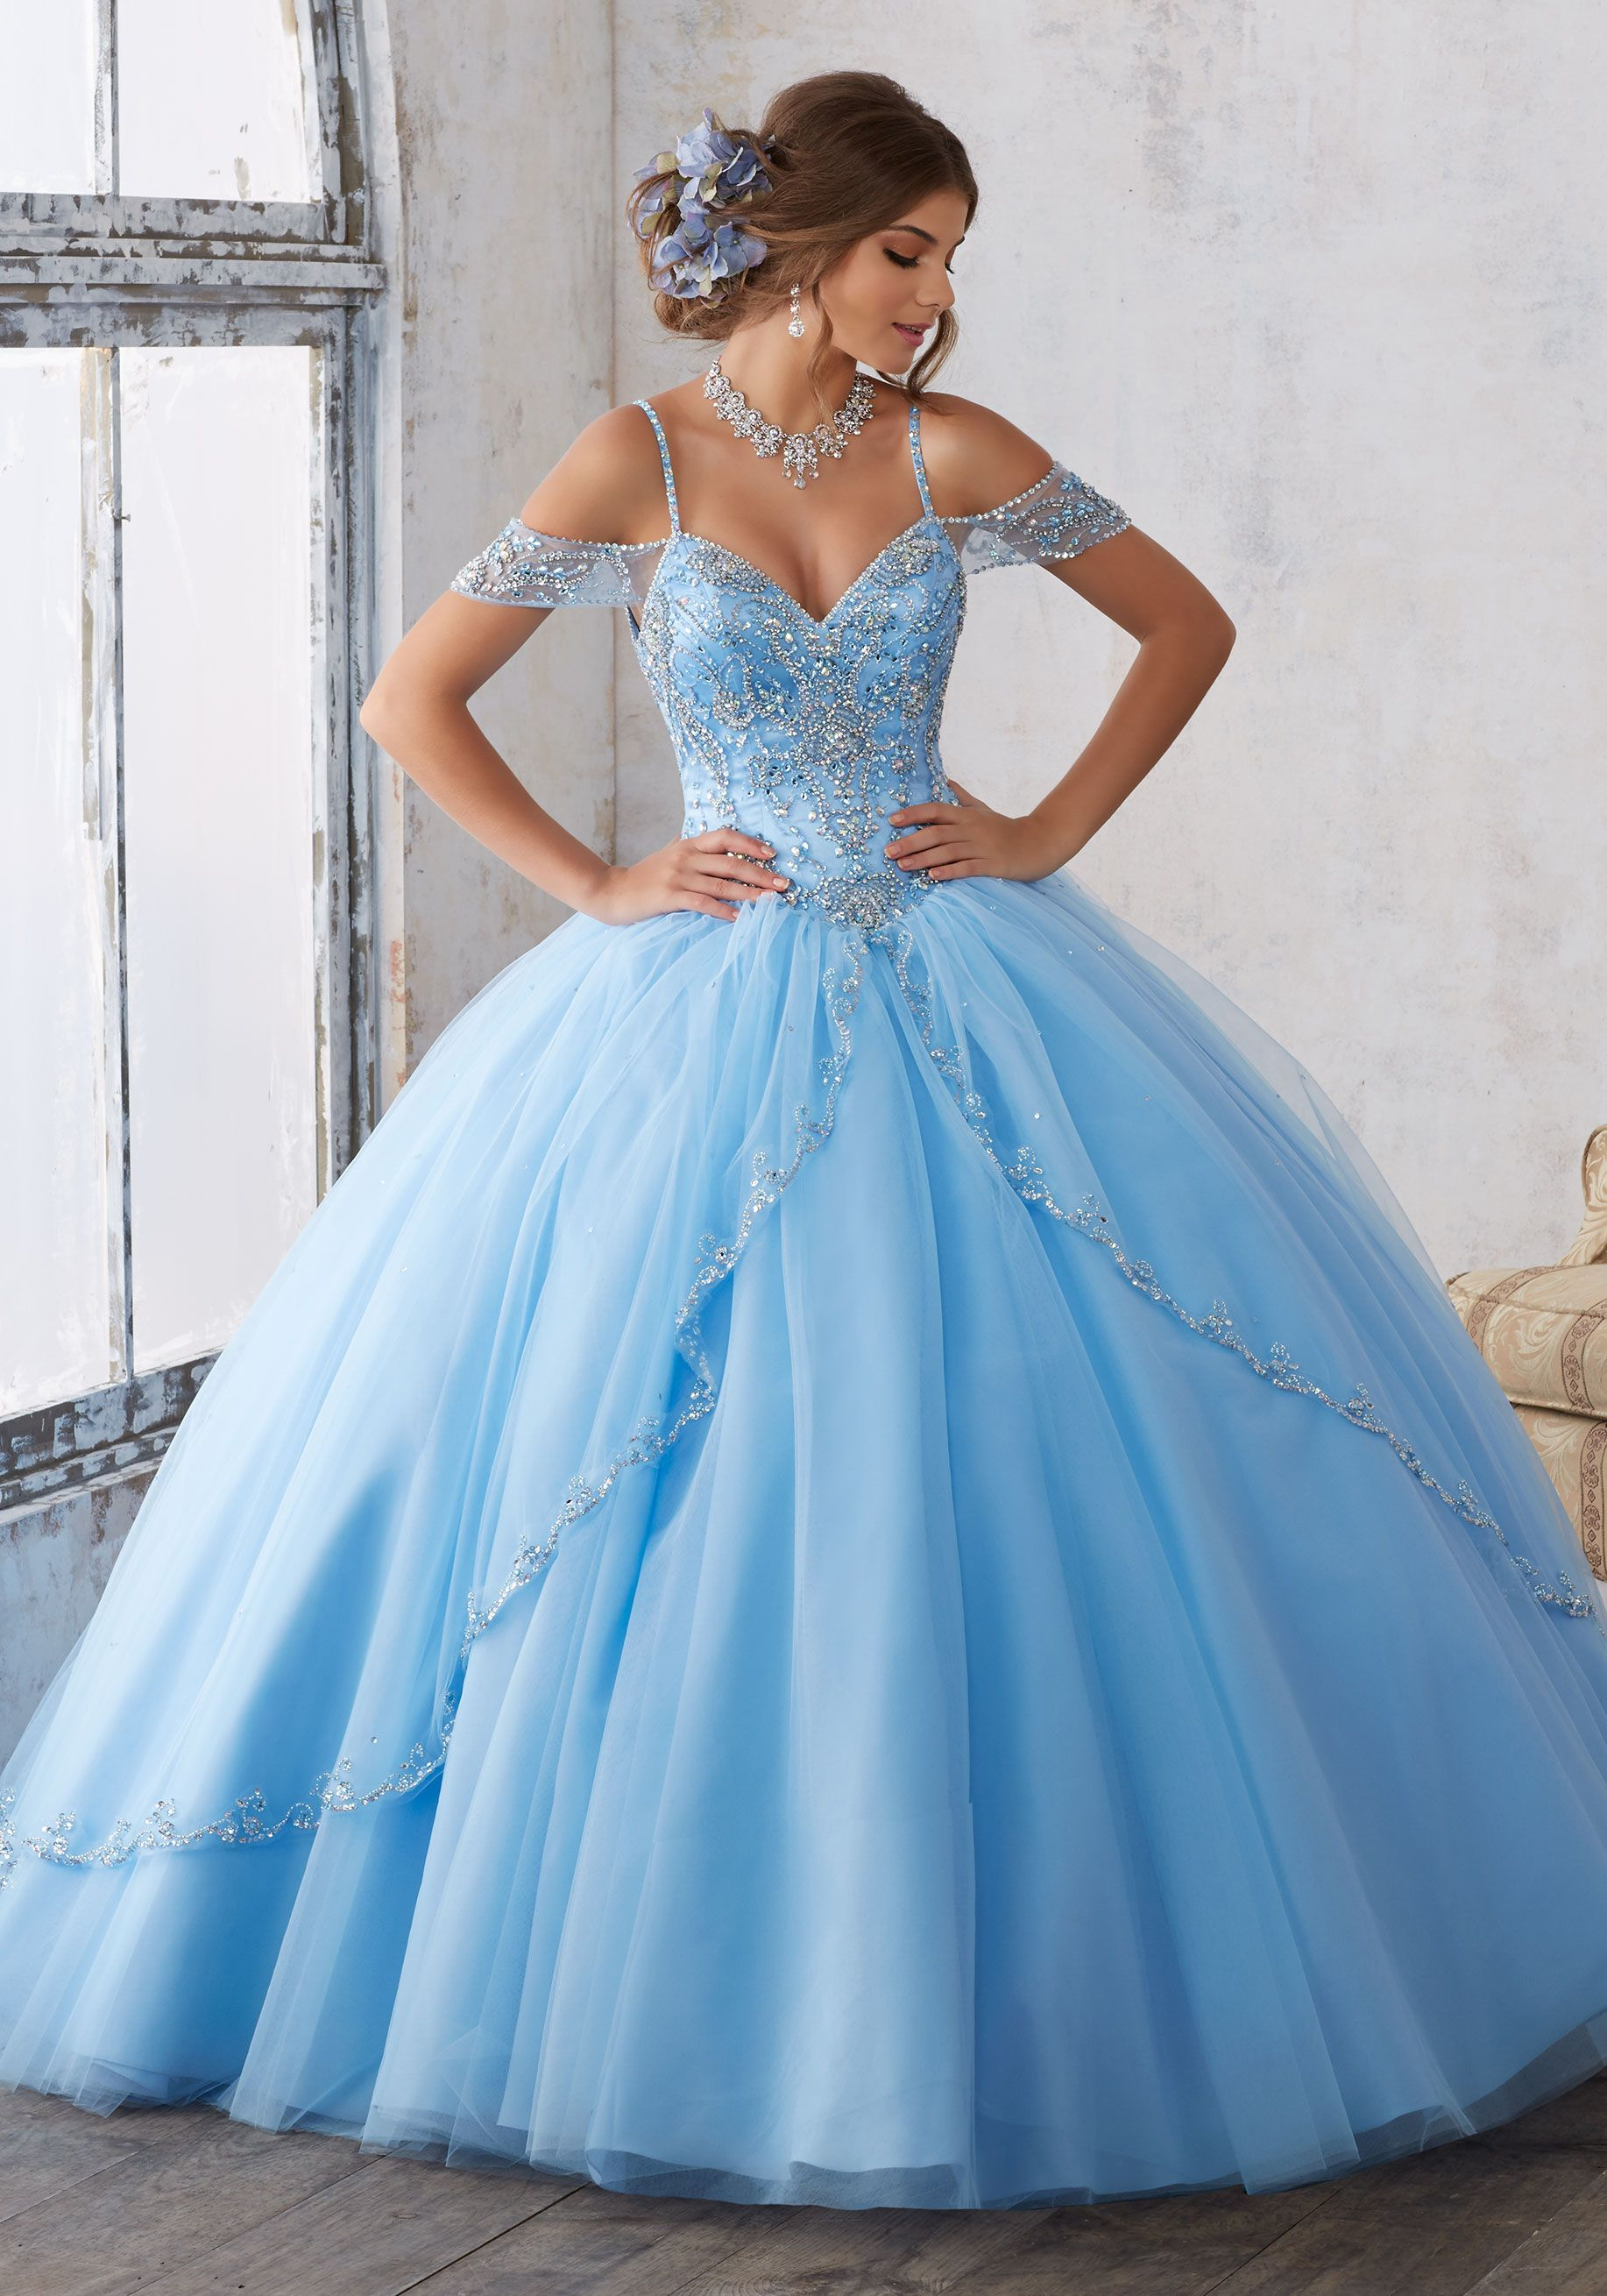 293ab0dcfc6 Morilee Quinceanera Dresses STYLE NUMBER  89135 Jeweled Beading on a Split  Front Tulle Ballgown Dramatic and Elegant